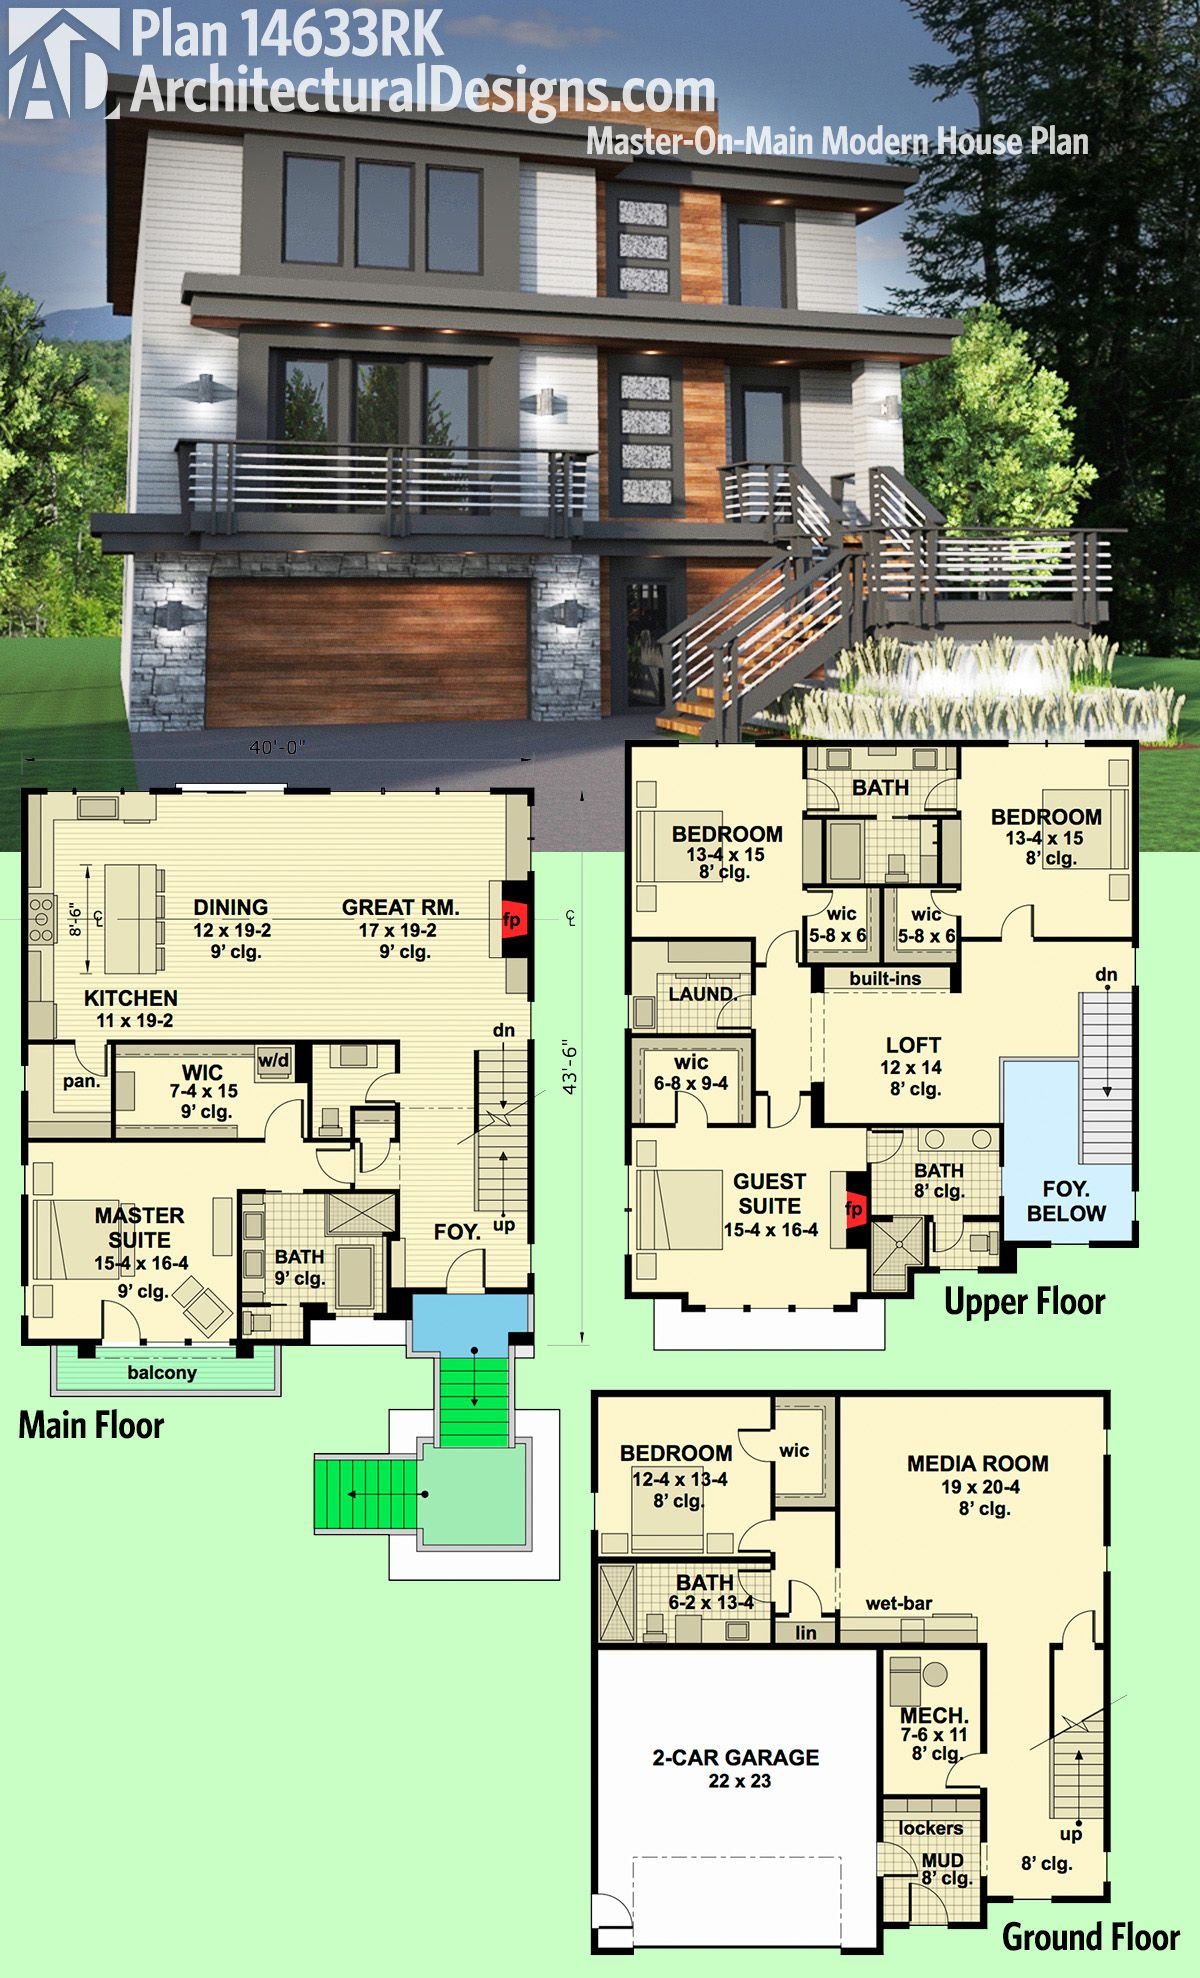 Plan 14633rk master on main modern house plan modern for Modern open floor house plans